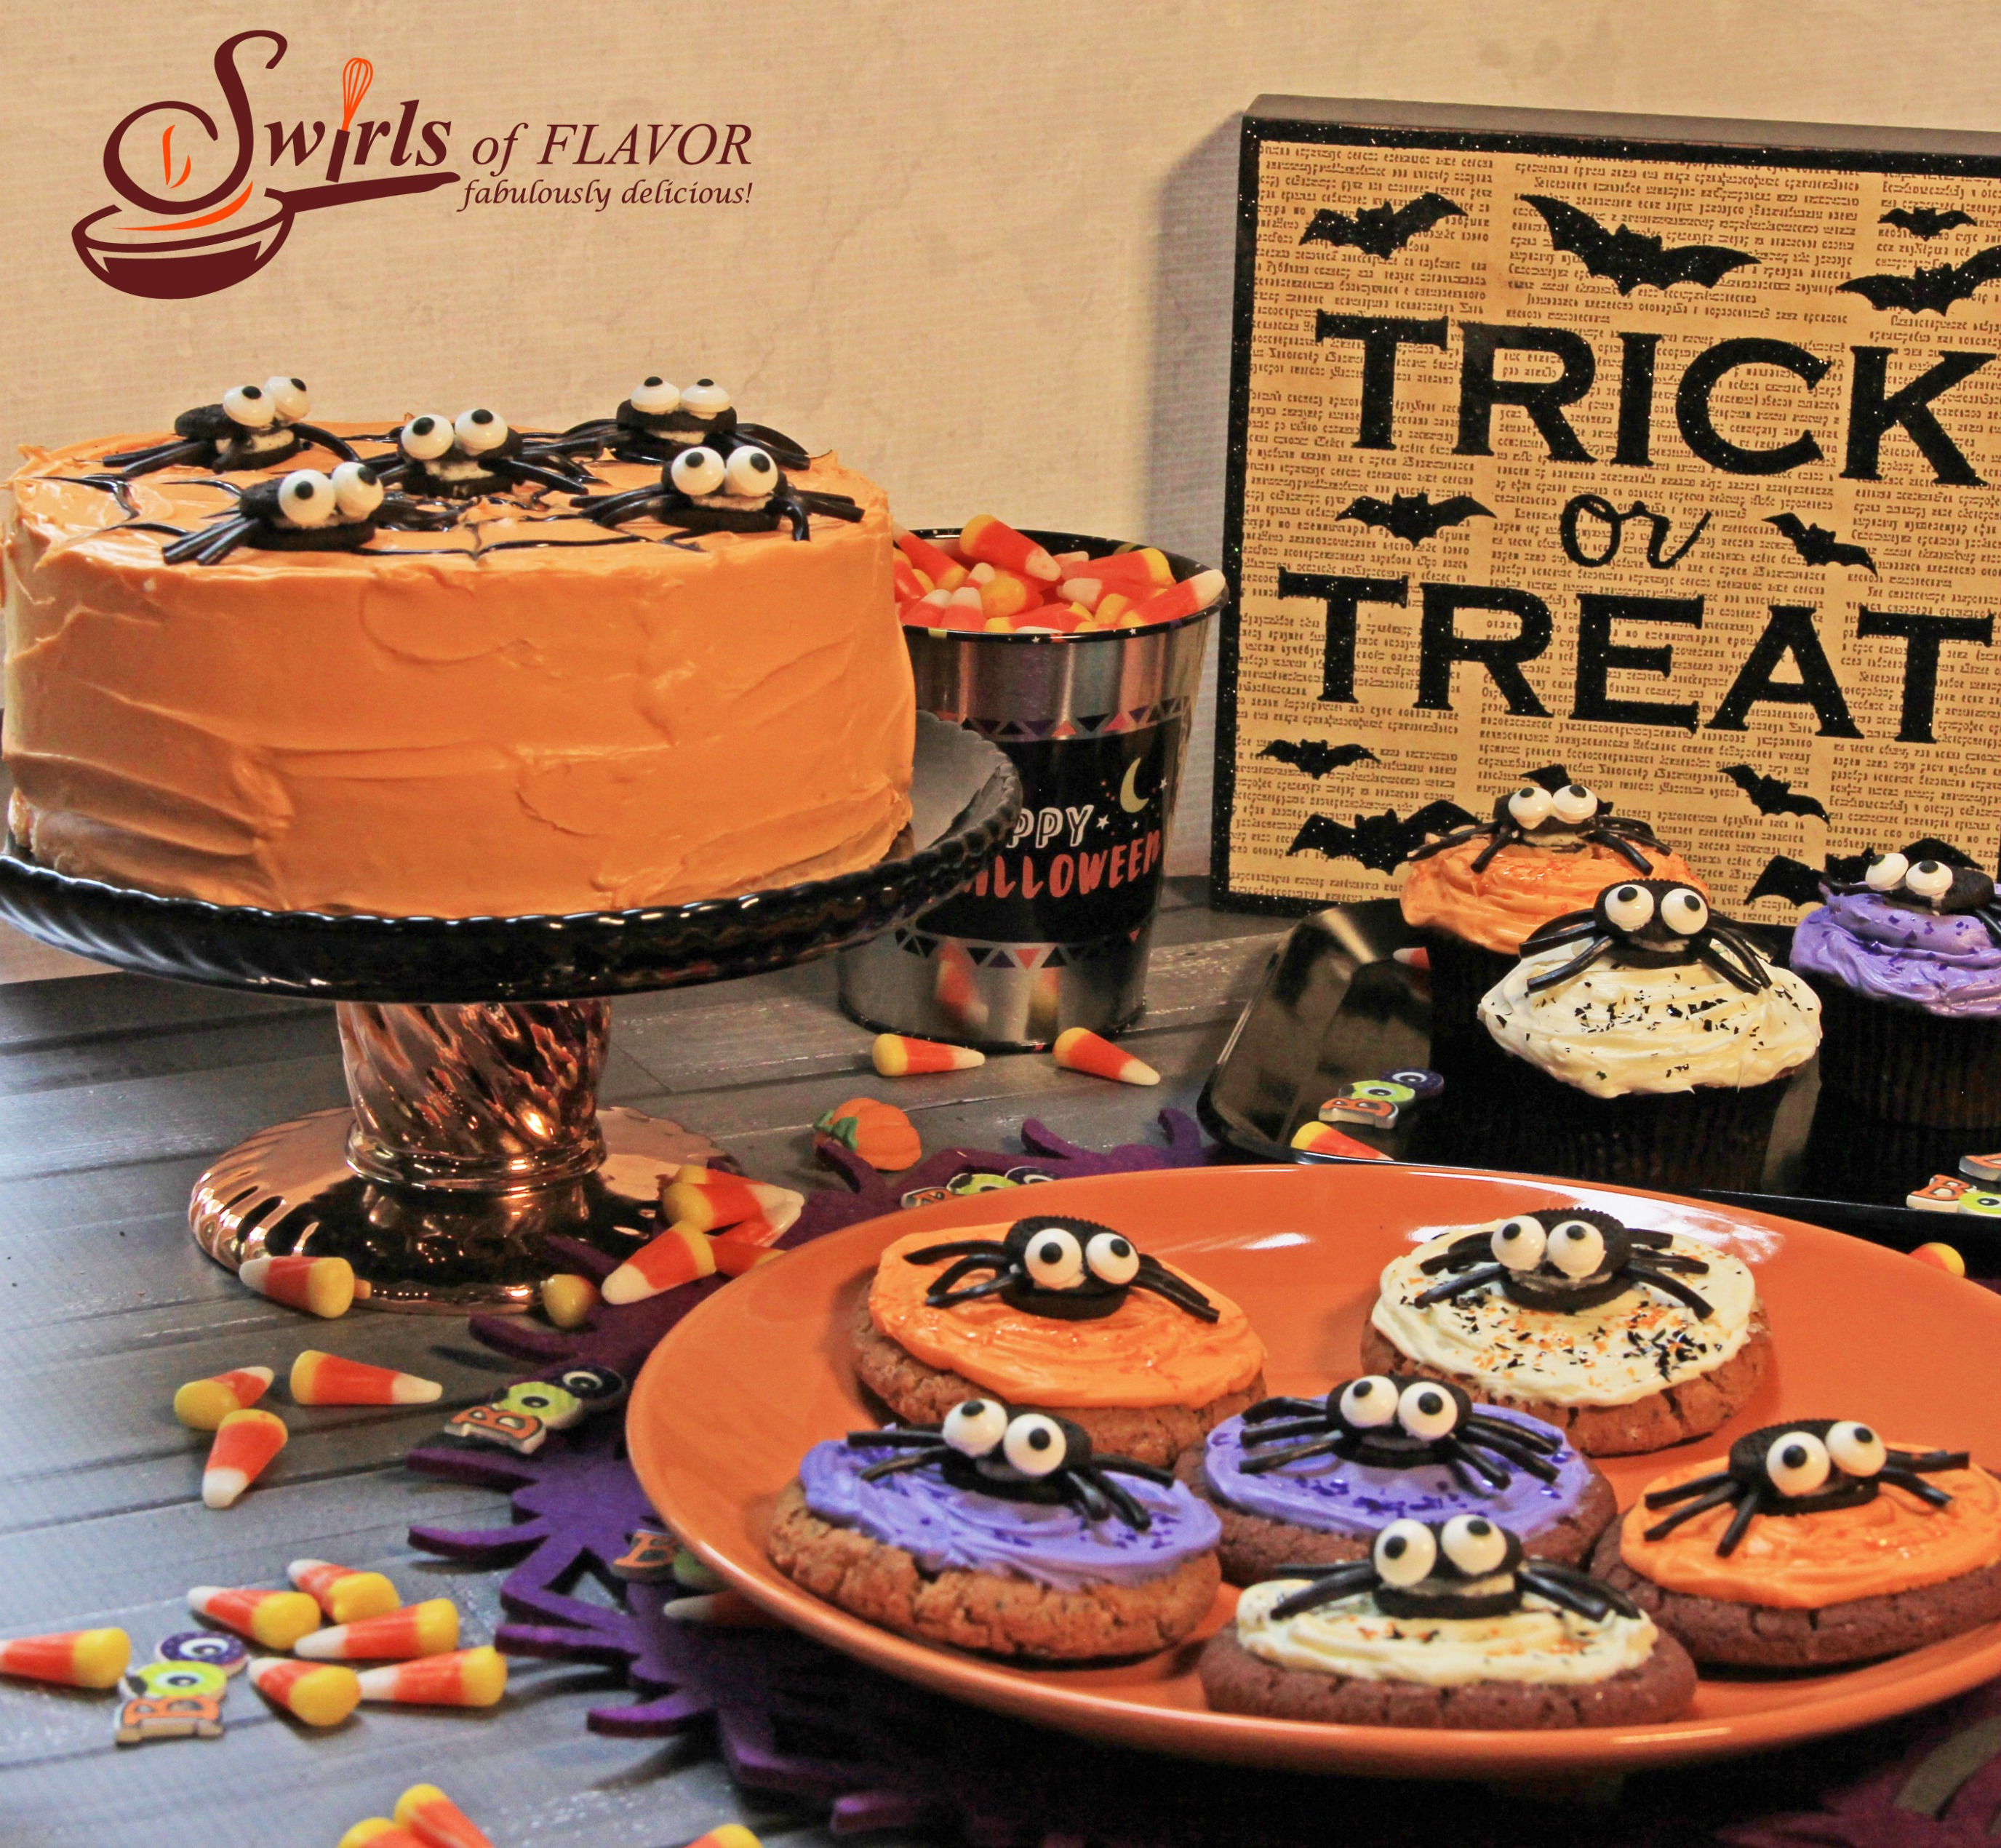 Spider cookies, spider cupcakes and spider cake with trick or treat sign